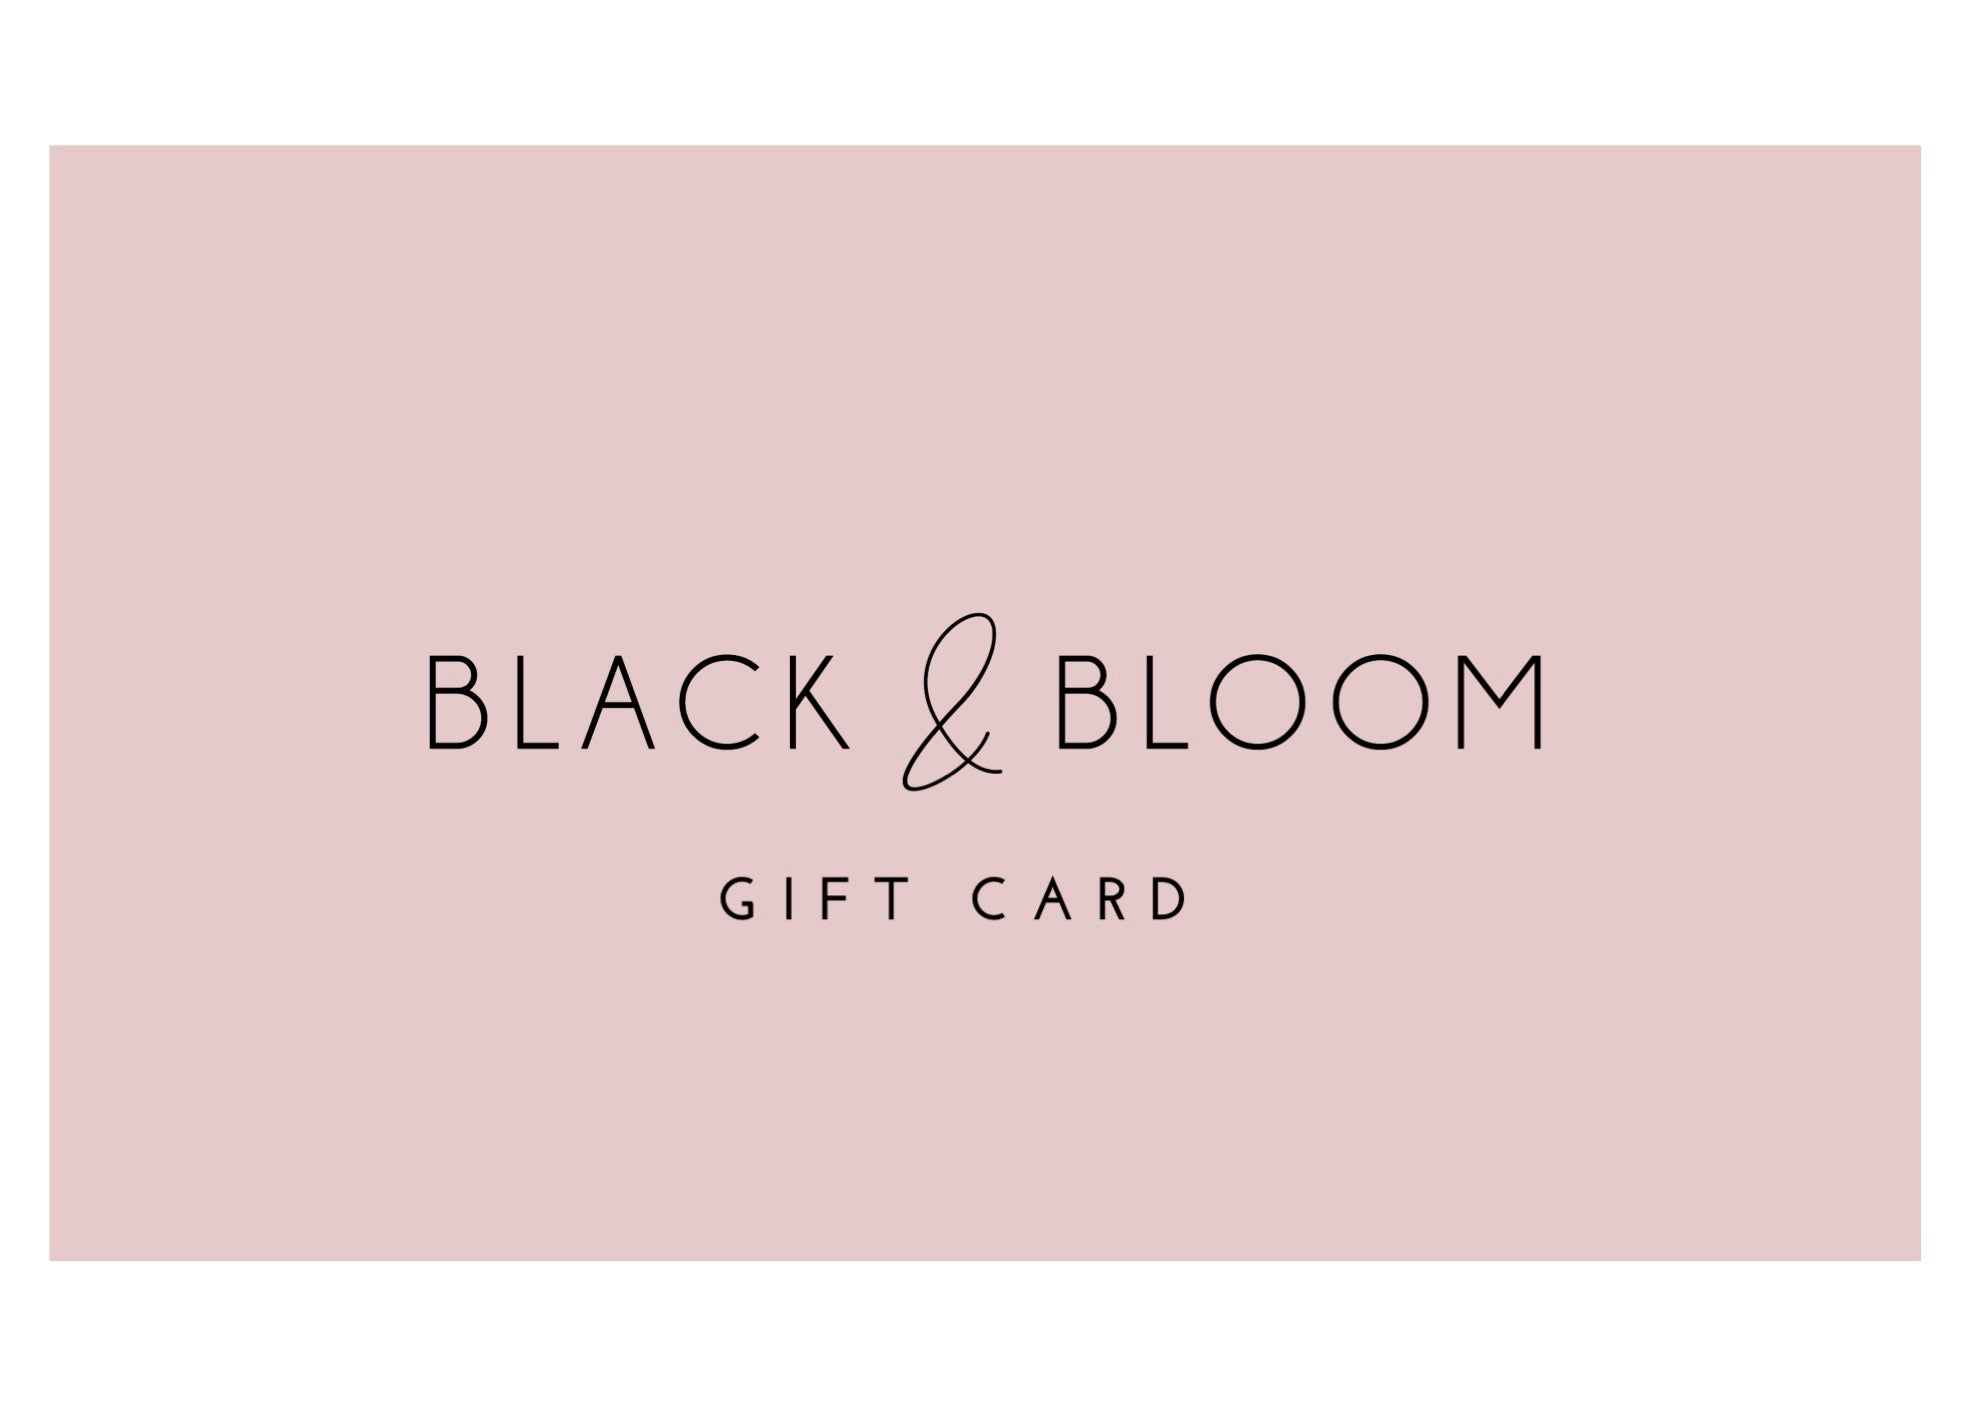 Gift Card - Black & Bloom